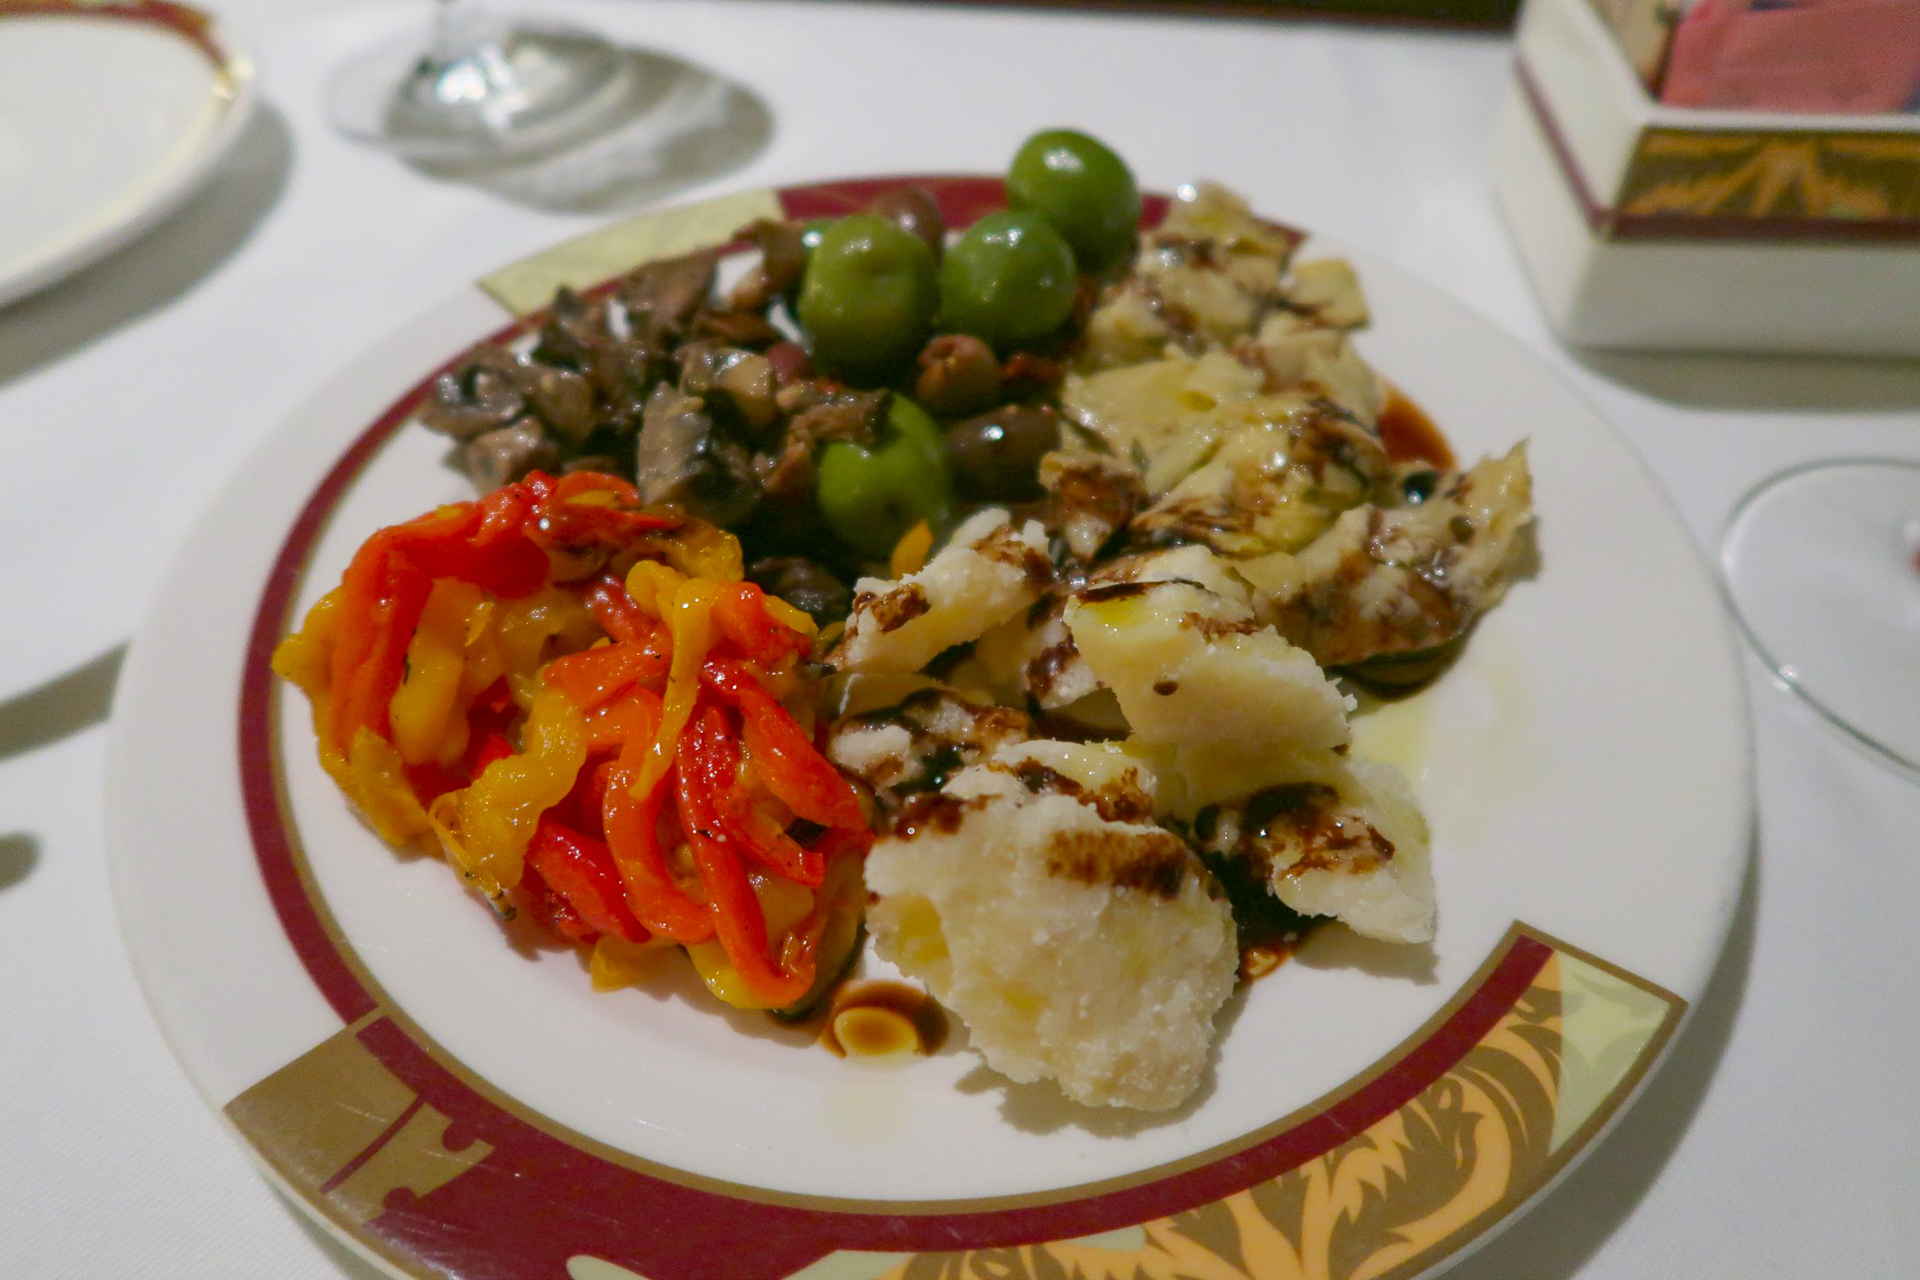 Vegan options from the antipasto cart at Palo dinner on the Disney Dream